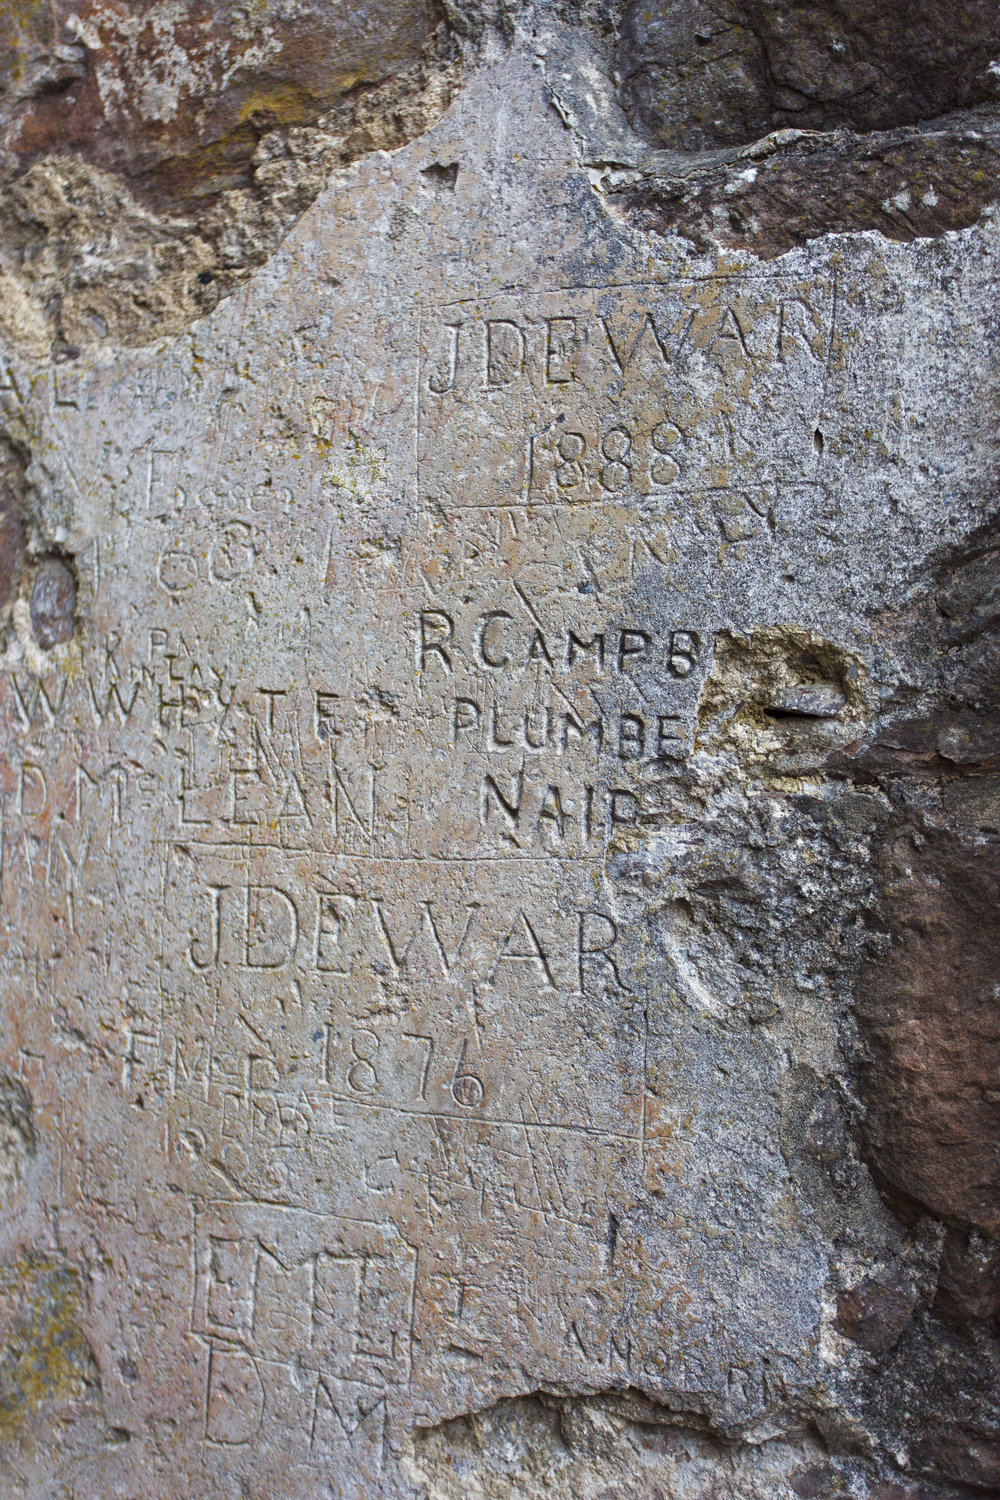 Graffiti from the 1800's